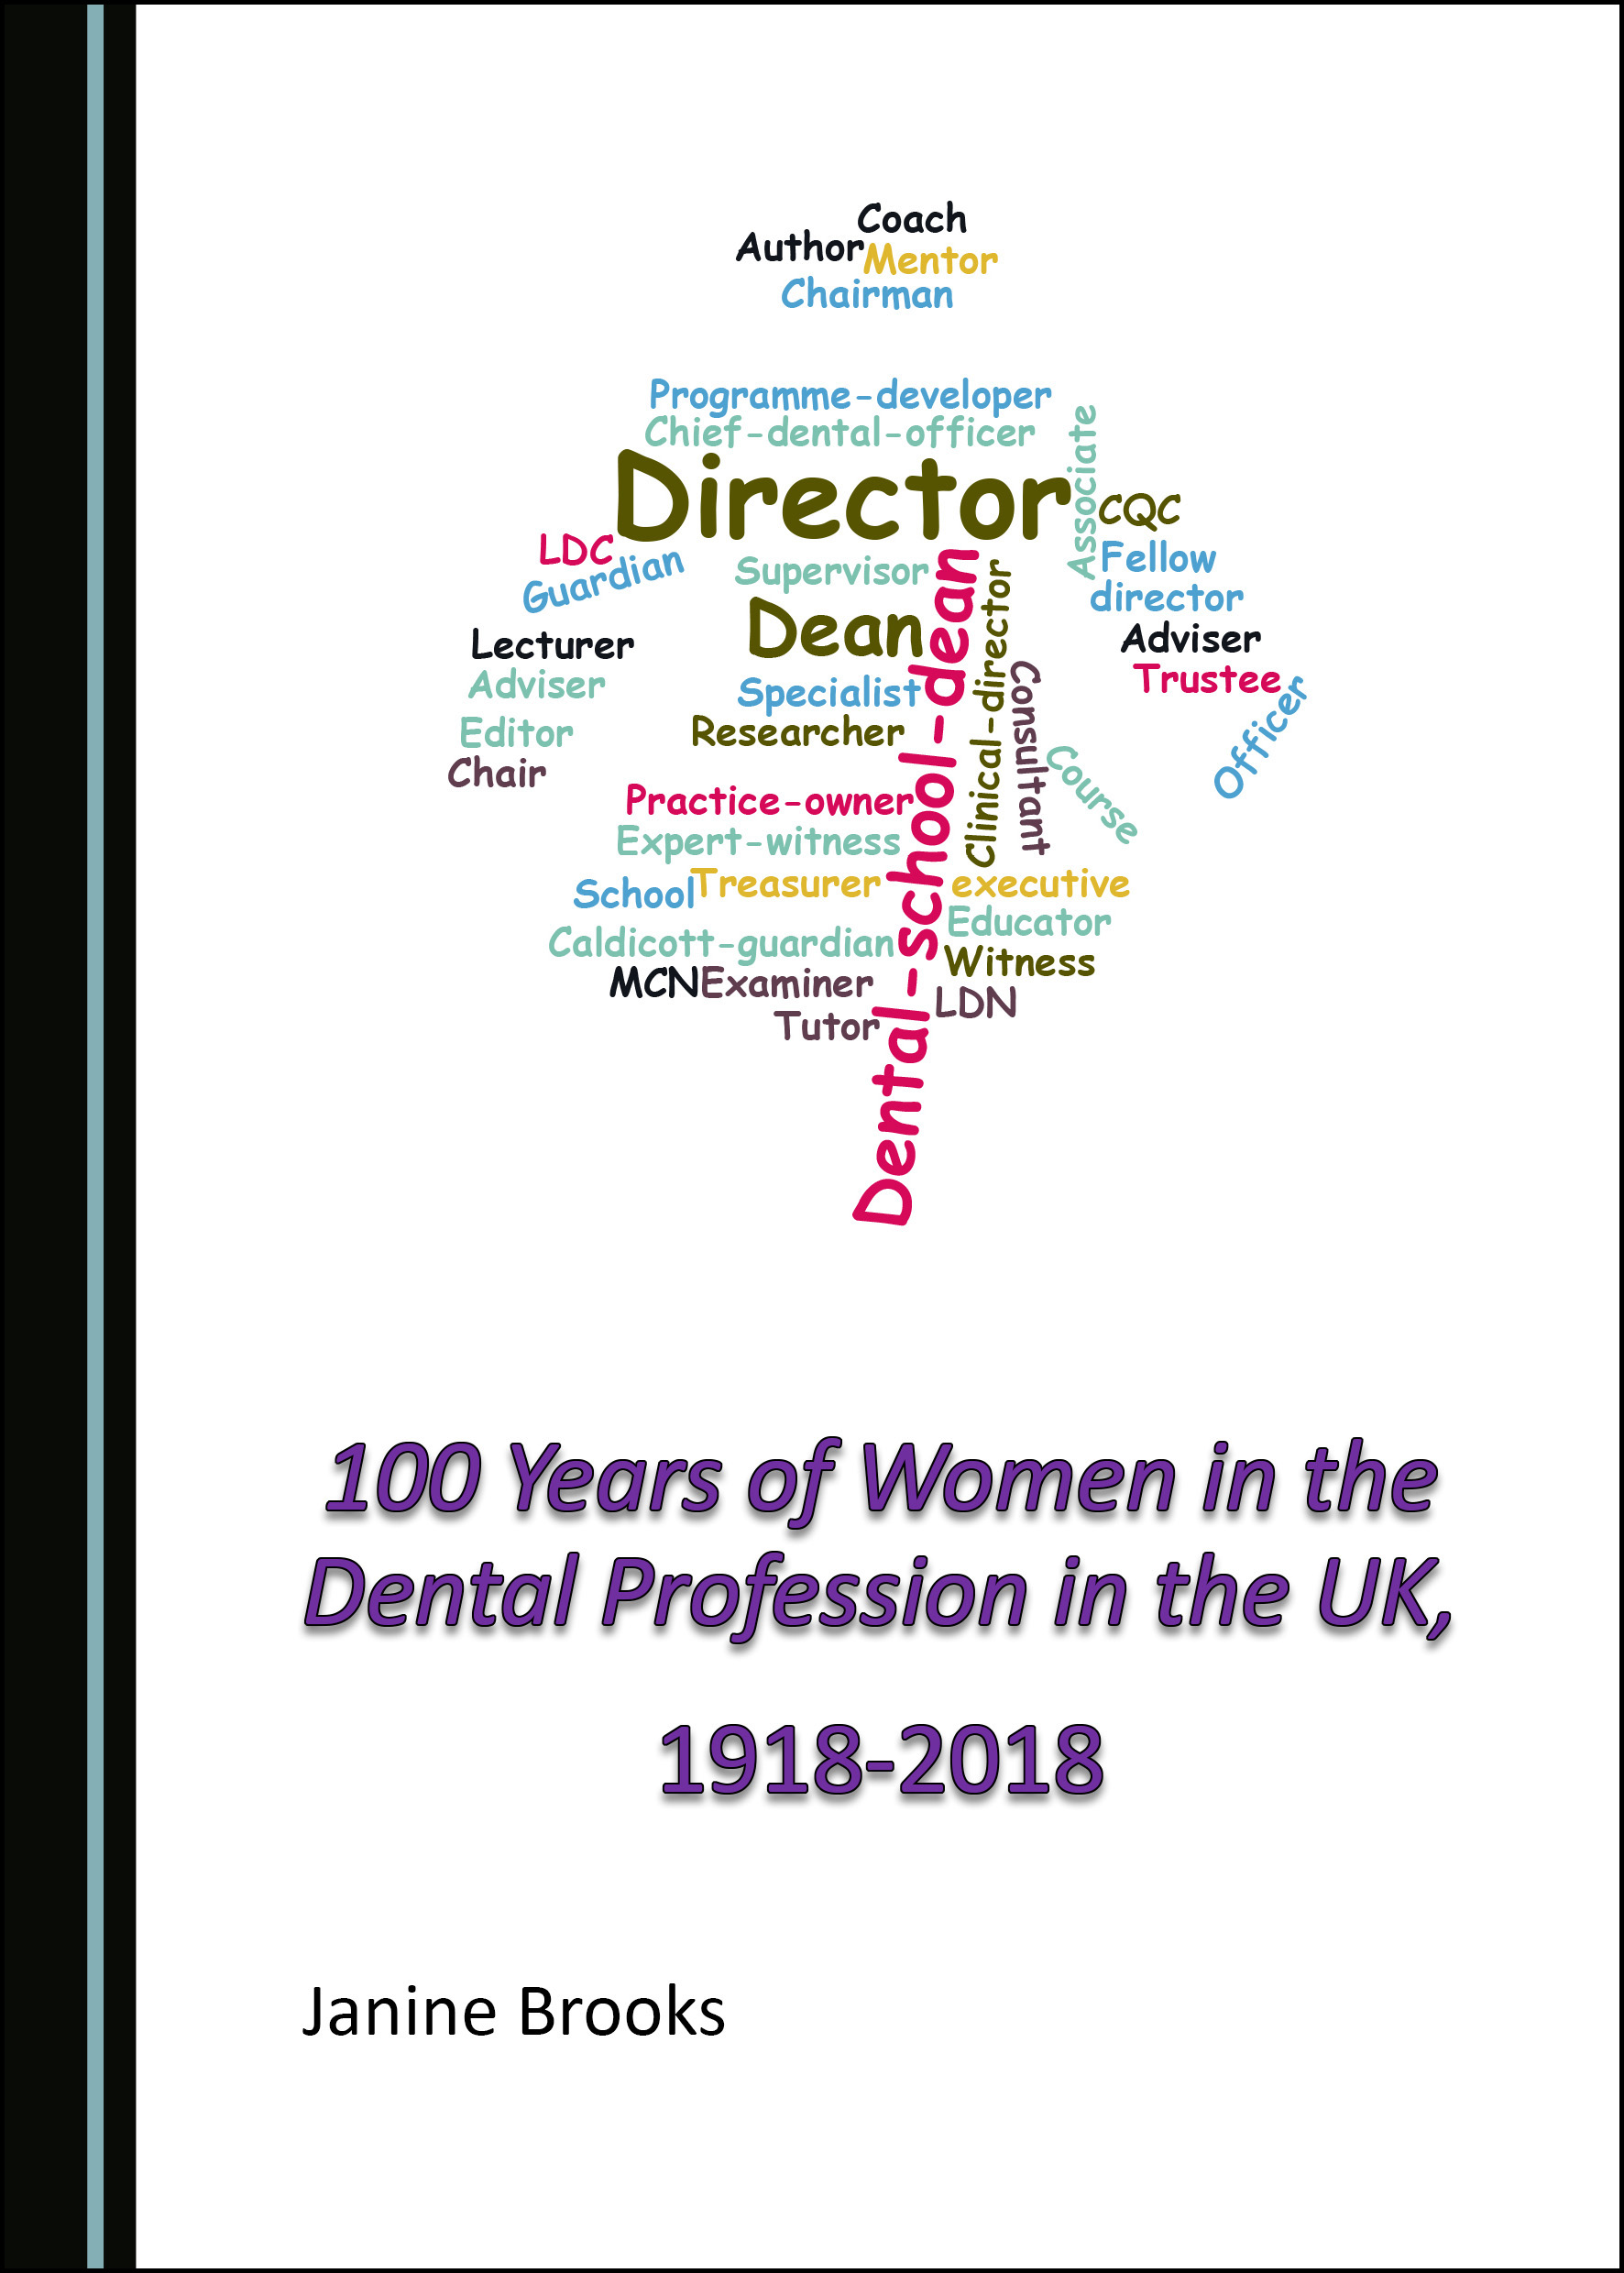 100 Years of Women in the Dental Profession in the UK, 1918-2018